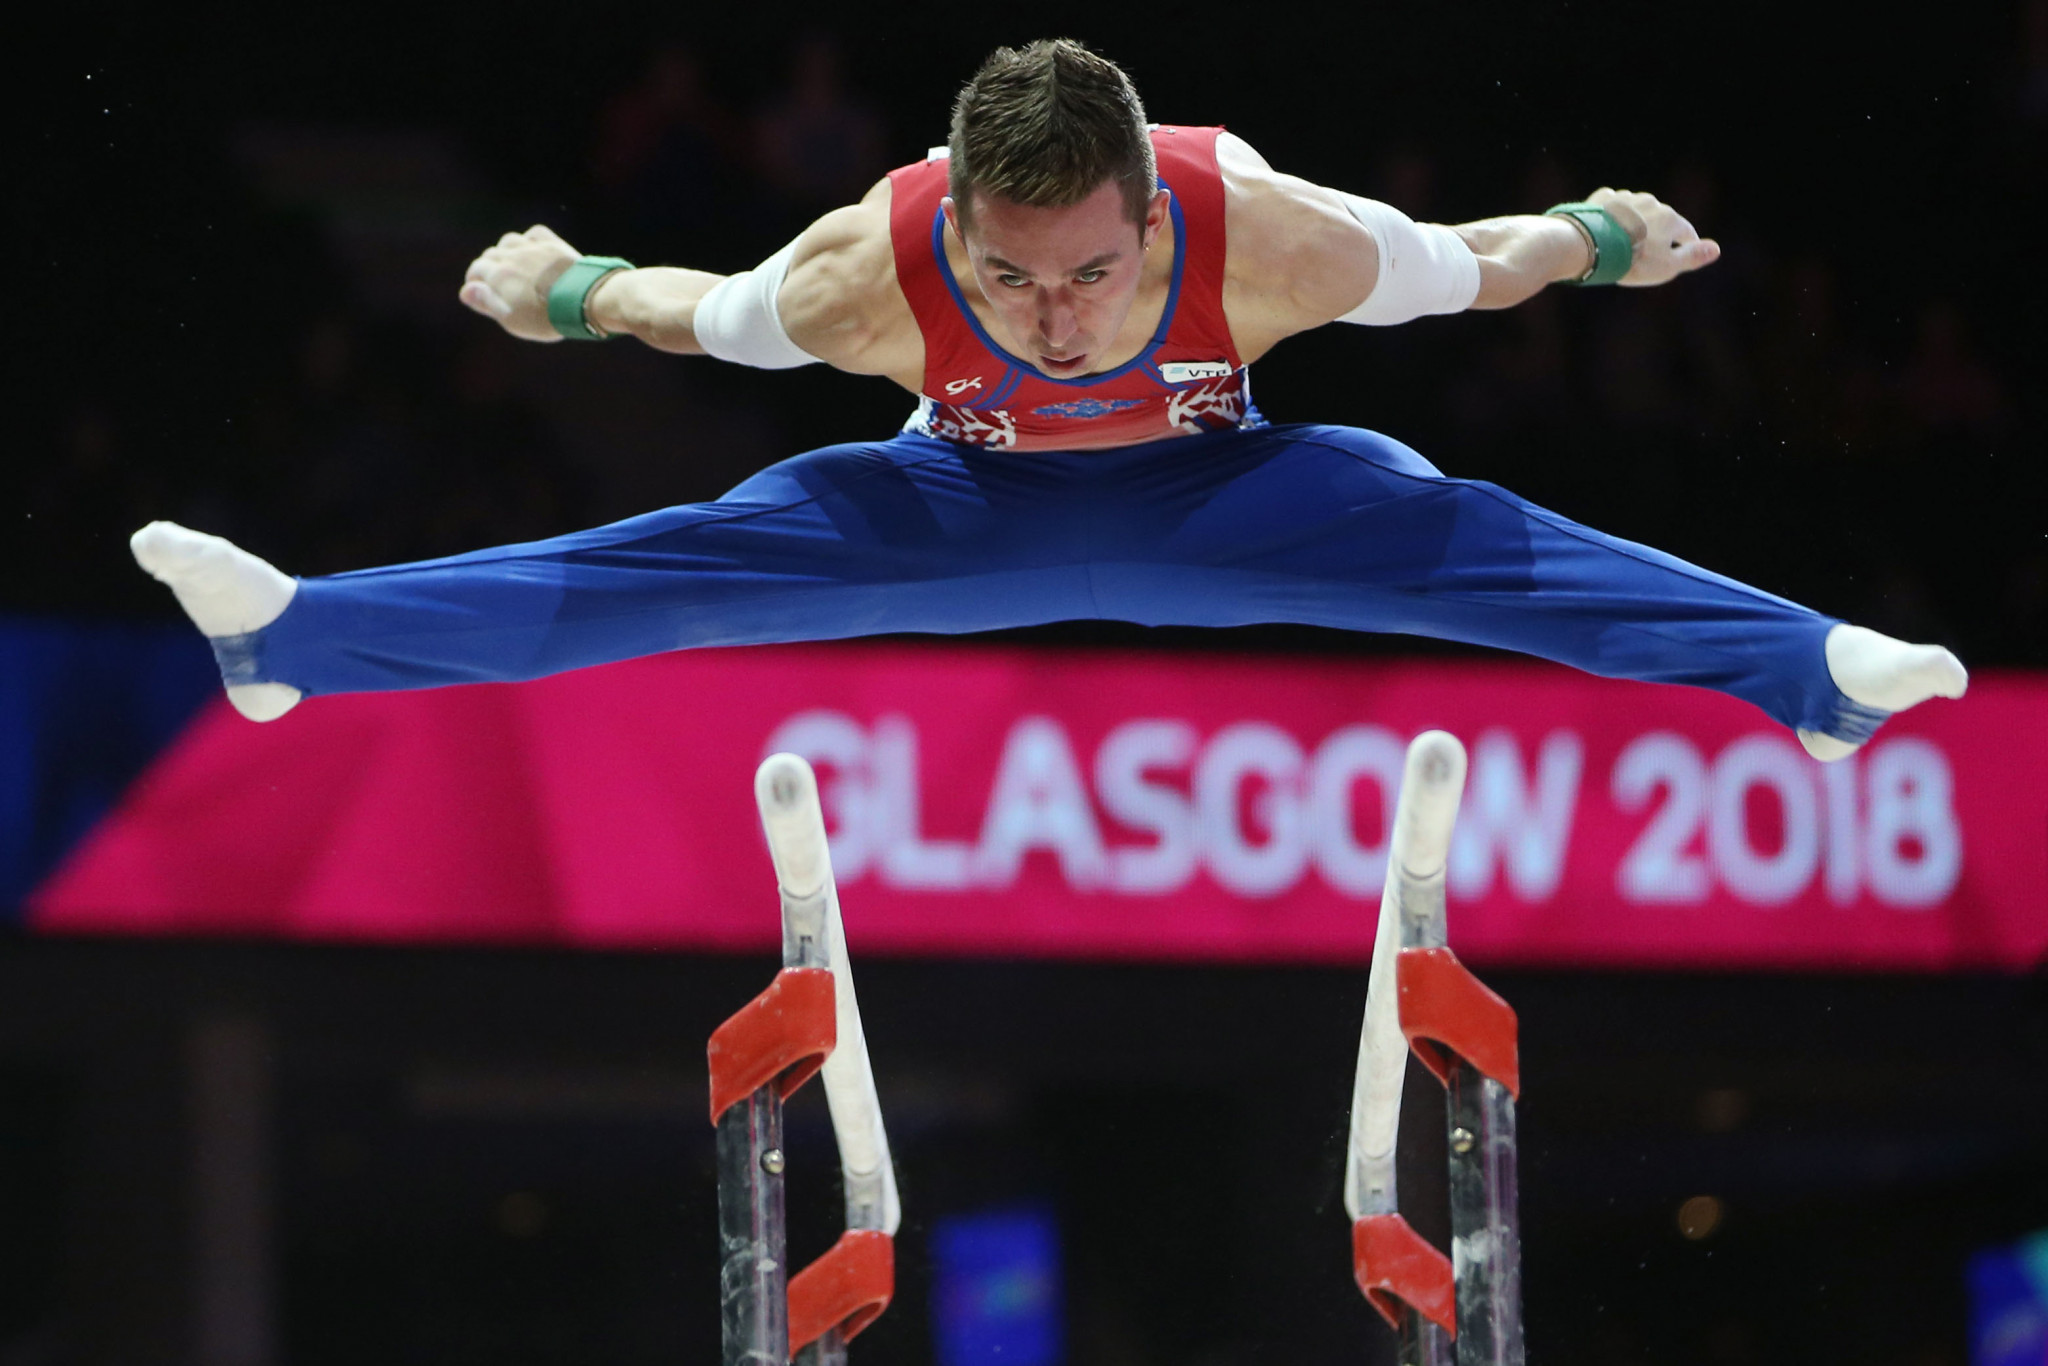 Russia topped the team standings as men's artistic gymnastics qualification took place today at the Glasgow 2018 European Championships ©FIG